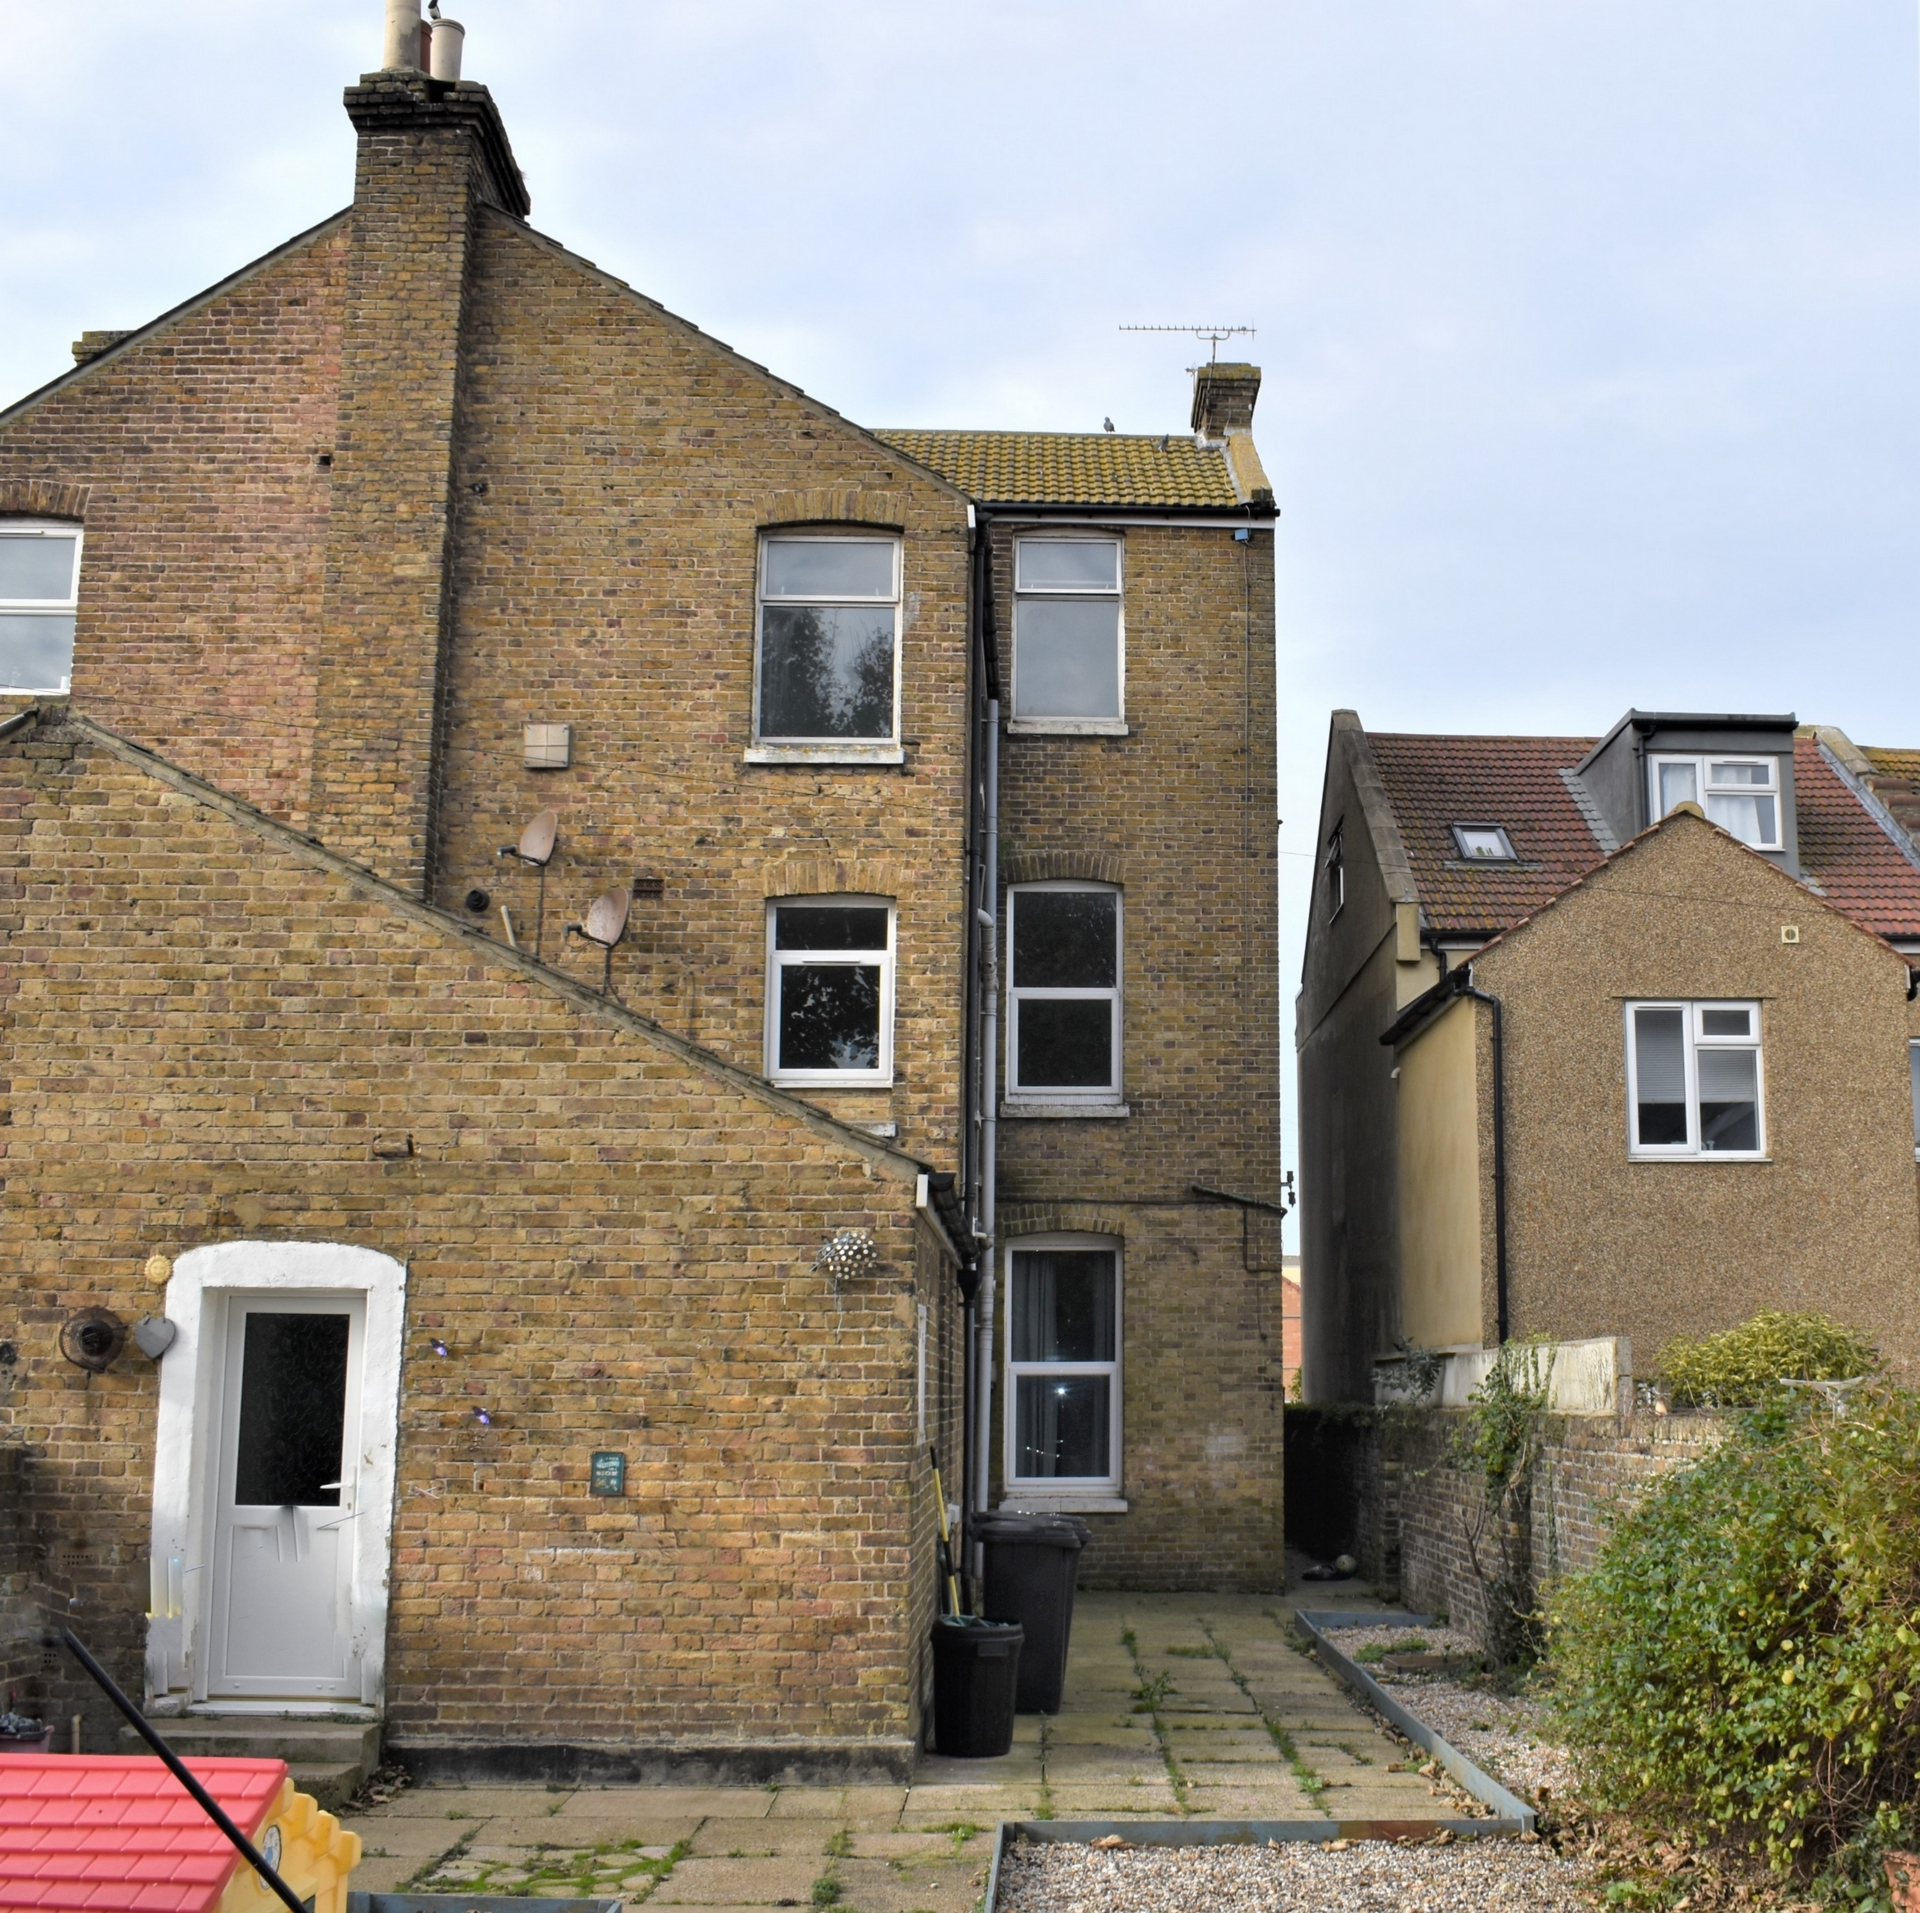 4 bed flat for sale in Harold Road, Margate 1